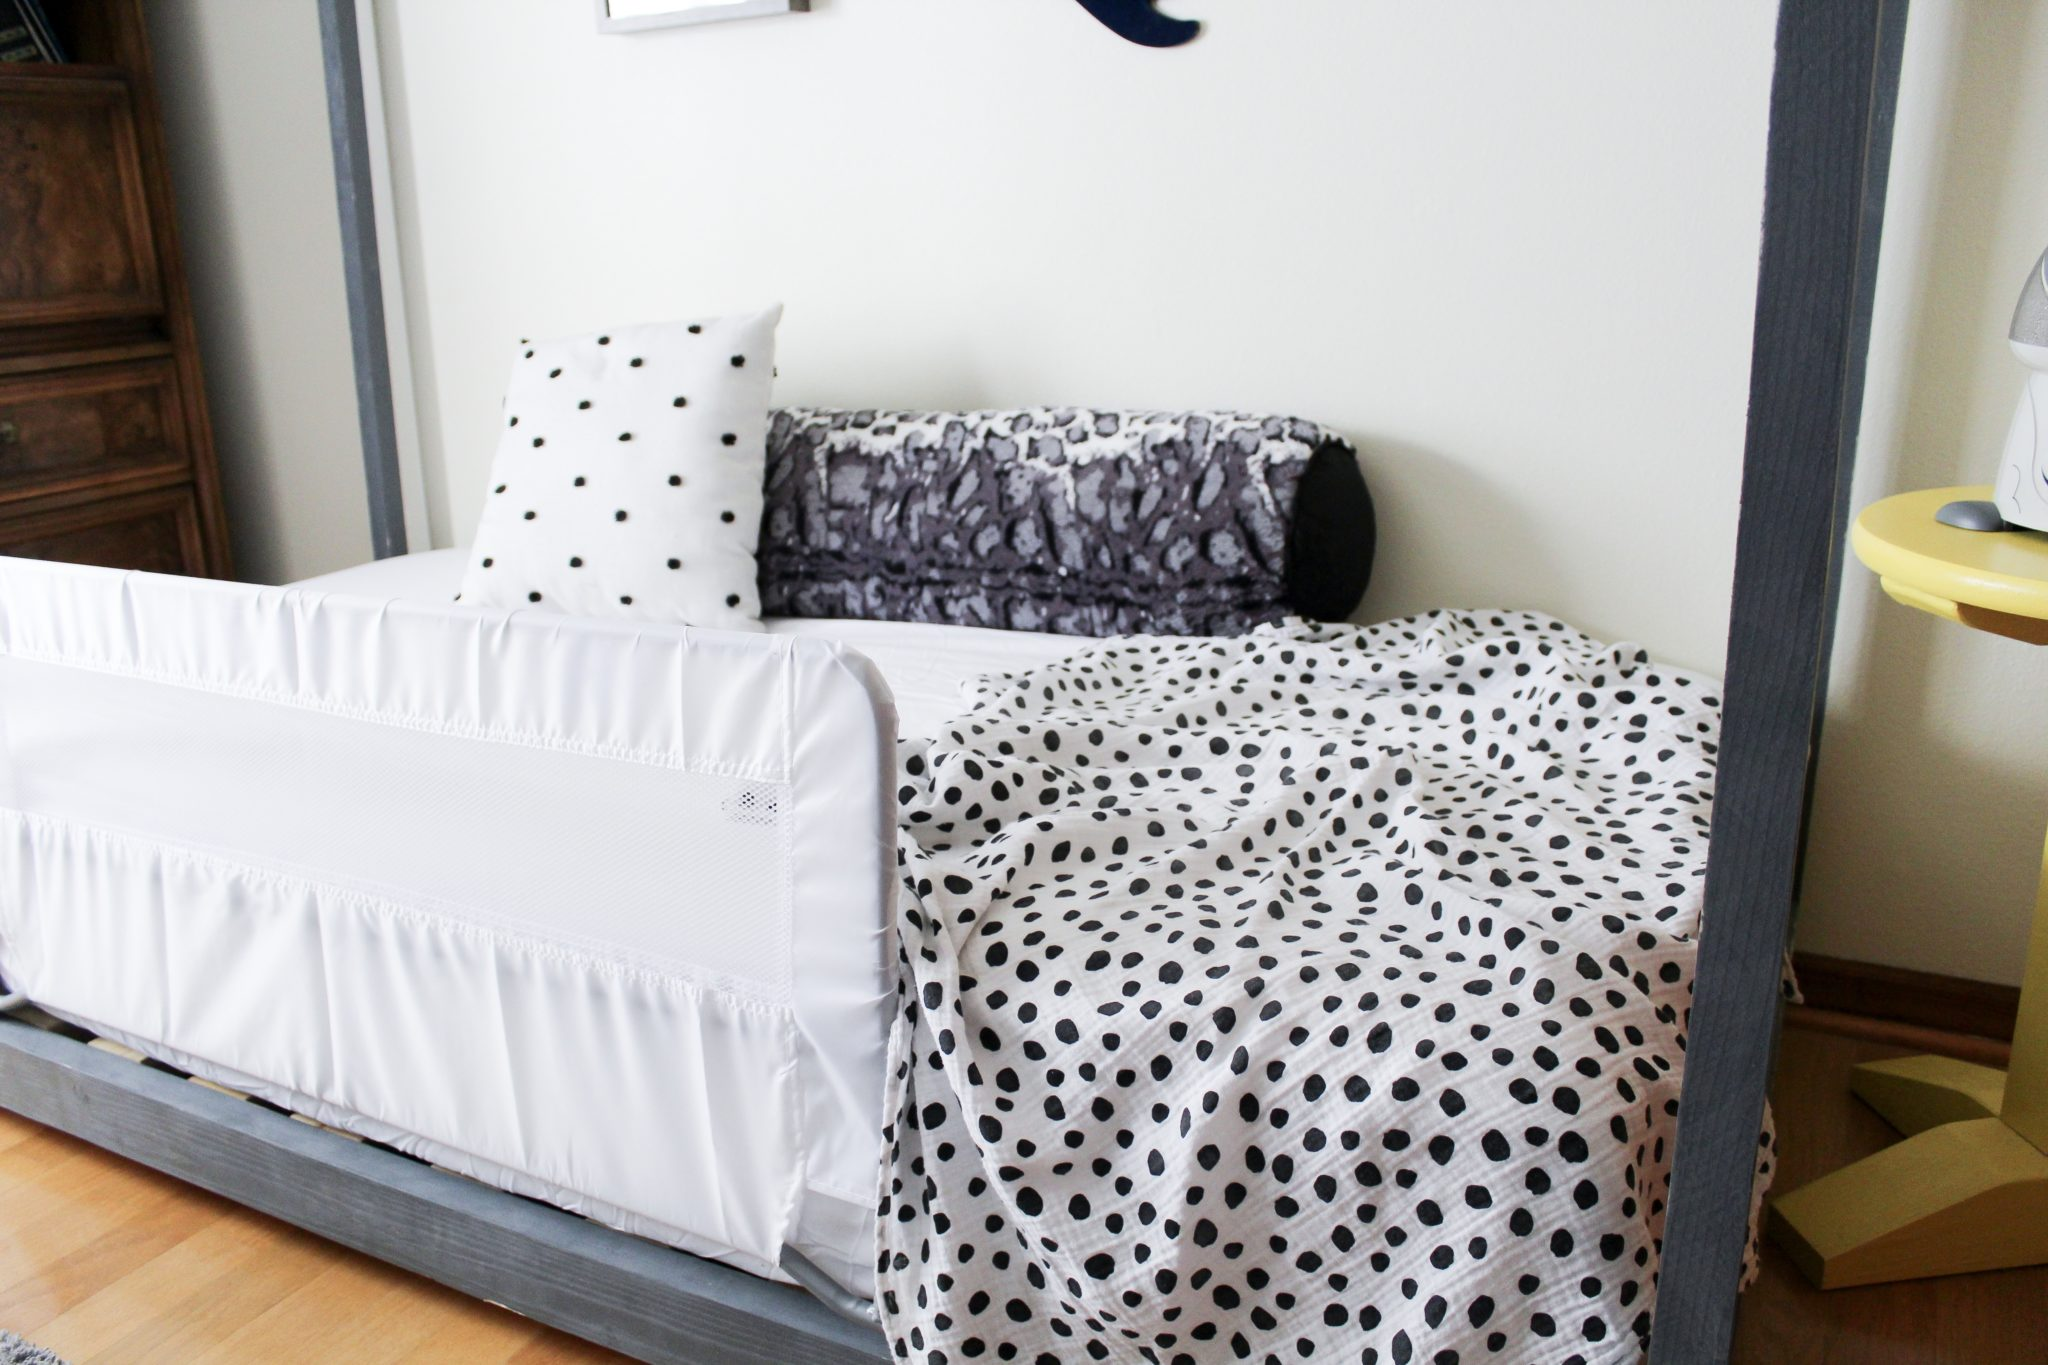 transitioning to toddler bed at 18 months, transitioned from crib, when to transition from toddler bed to twin bed, how to keep toddler in bed, transition to toddler bed supernanny, when do i convert crib to toddler bed, co sleeping to toddler bed, toddler climbing out of crib, toddler bed age limit